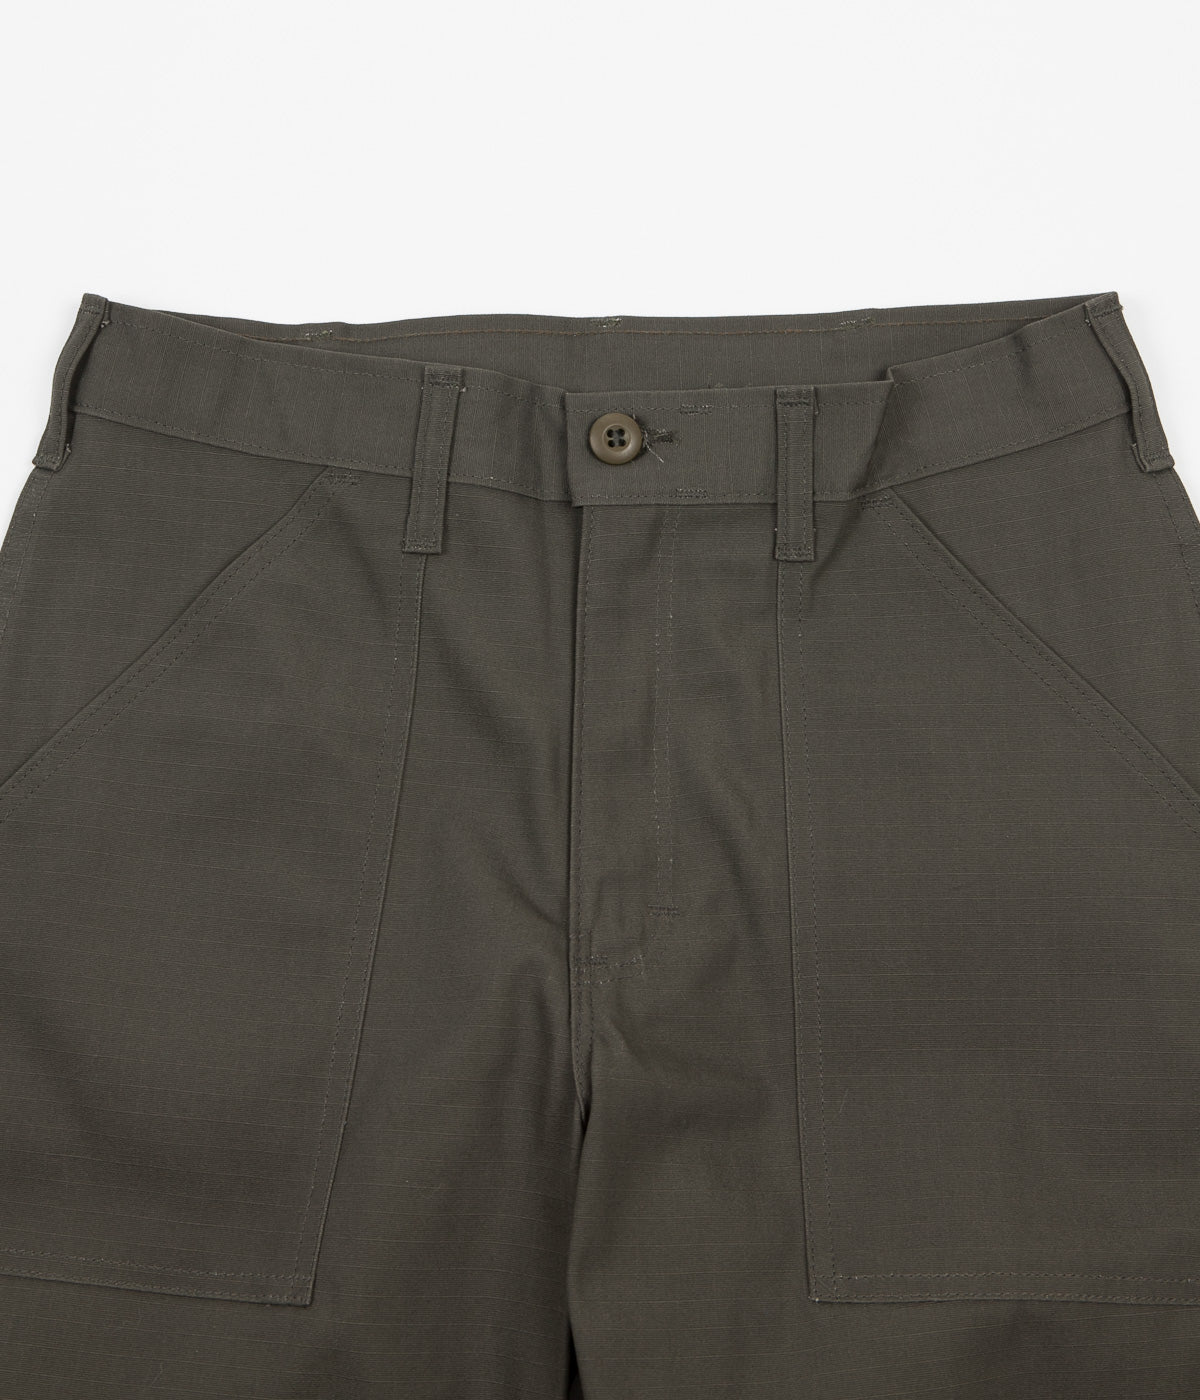 Stan Ray Taper Fit 4 Pocket Fatigue Trousers - Olive Rip Stop